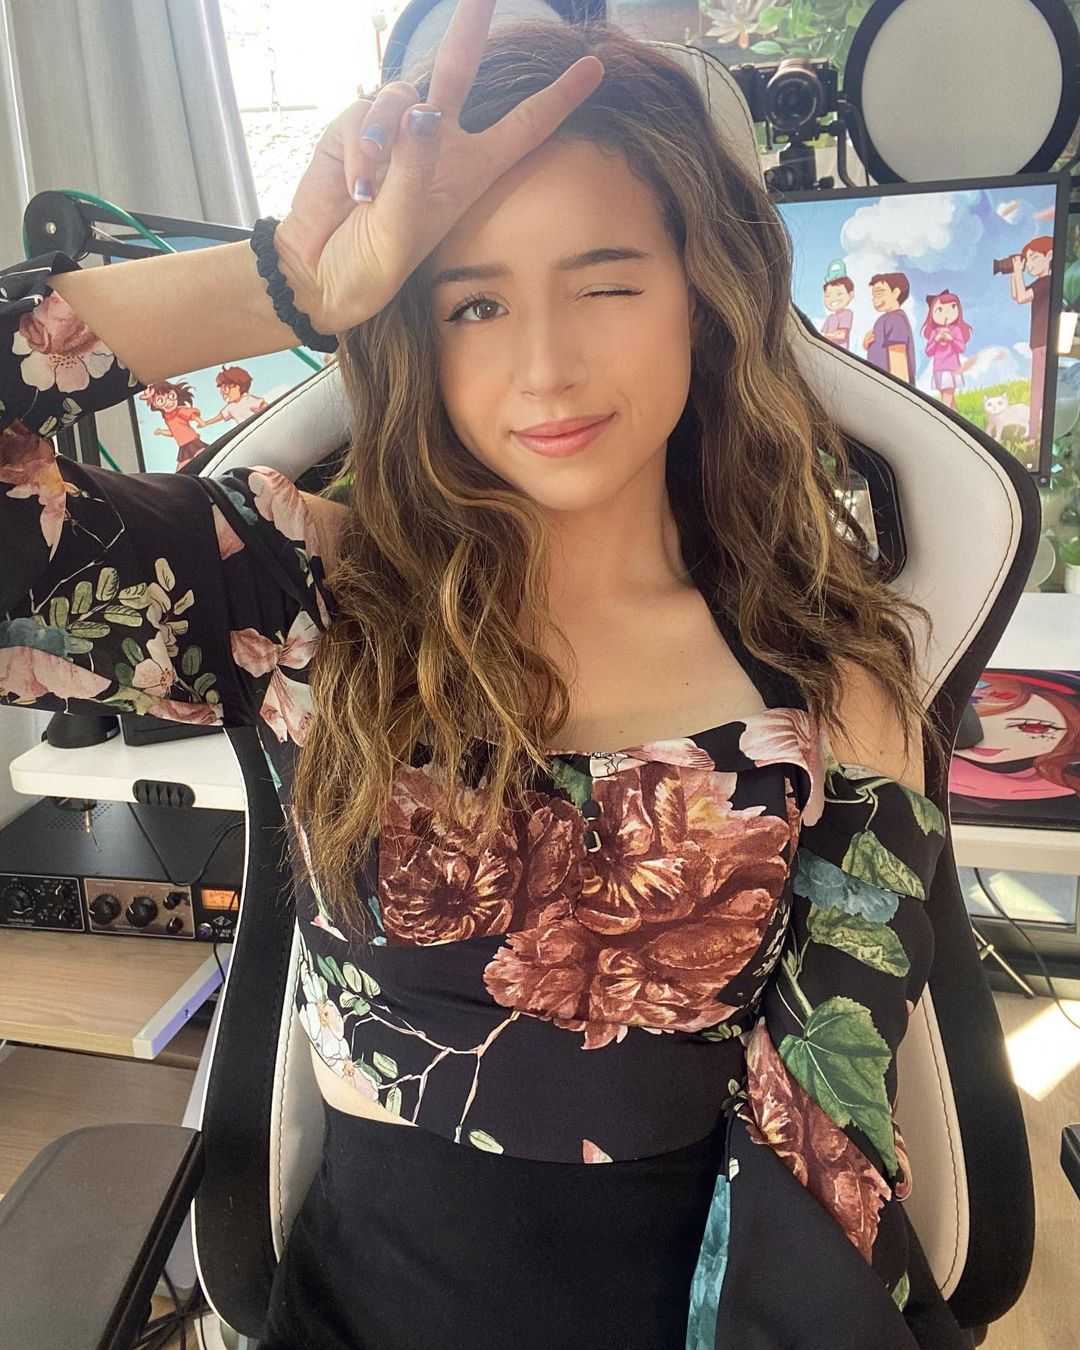 Sexy cute and hot photos from Pokimane Twitch streamers 22 19